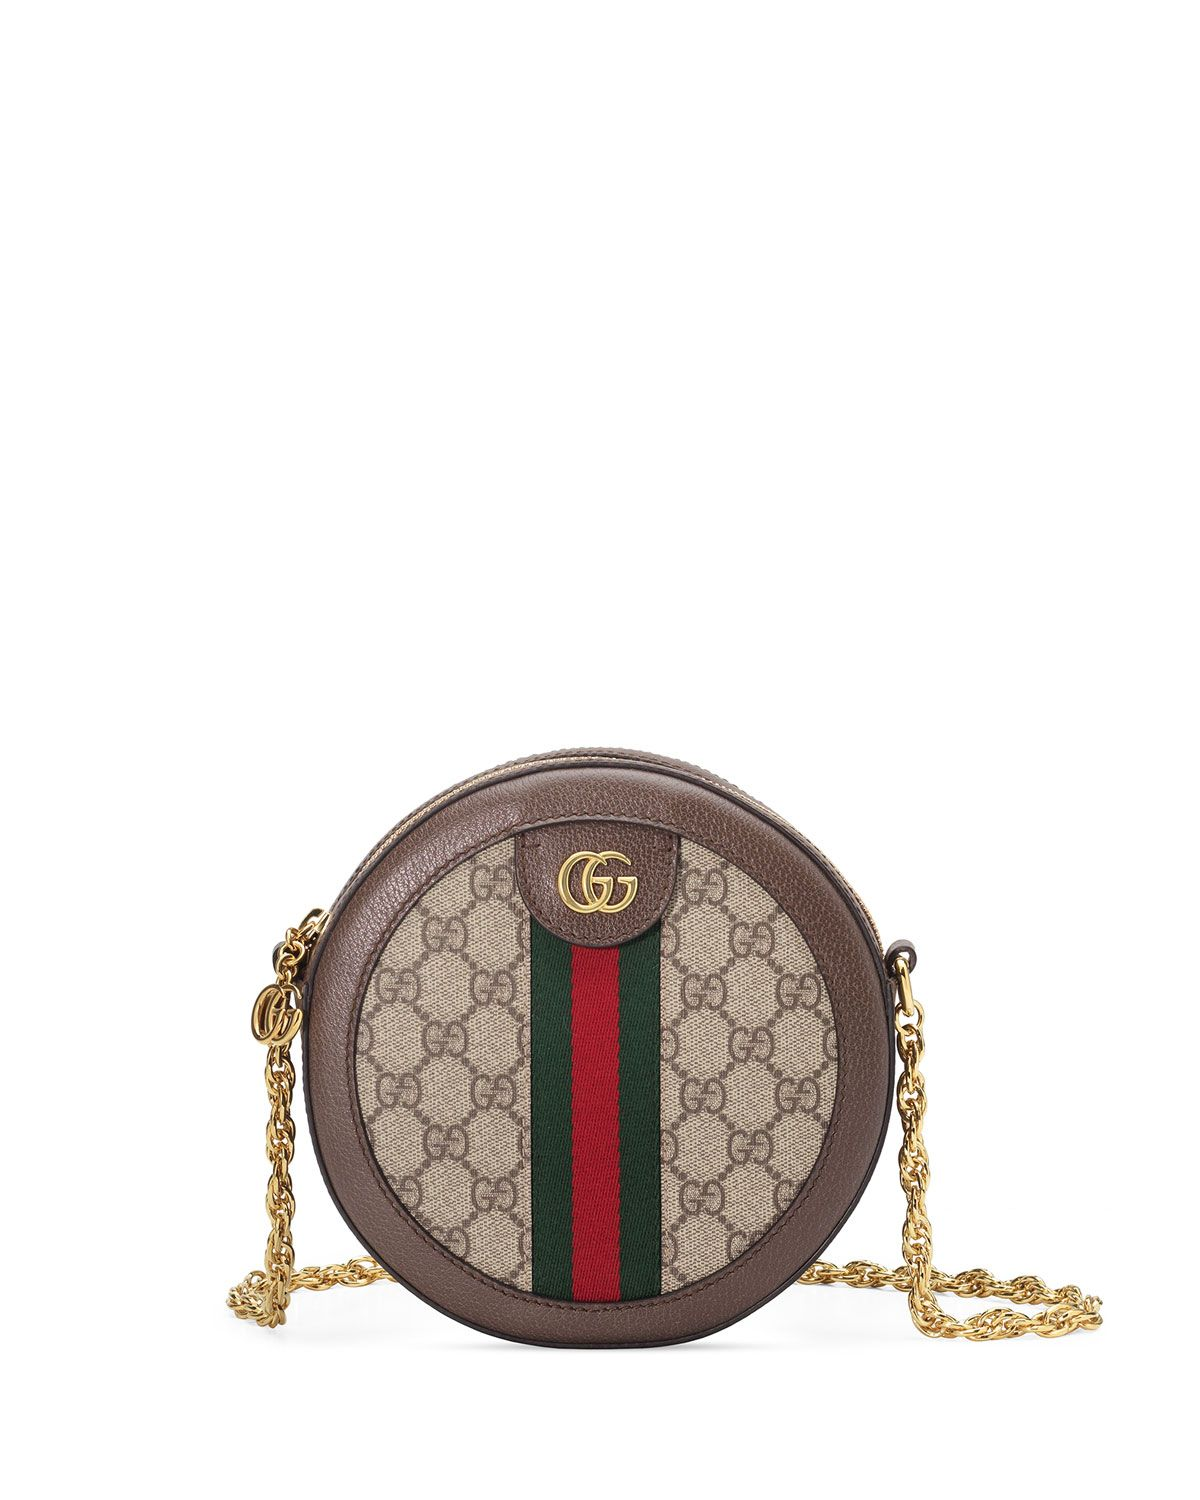 1771430f00a GUCCI - OPHIDIA MINI GG ROUND SHOULDER BAG | Trends 2019 in 2019 ...